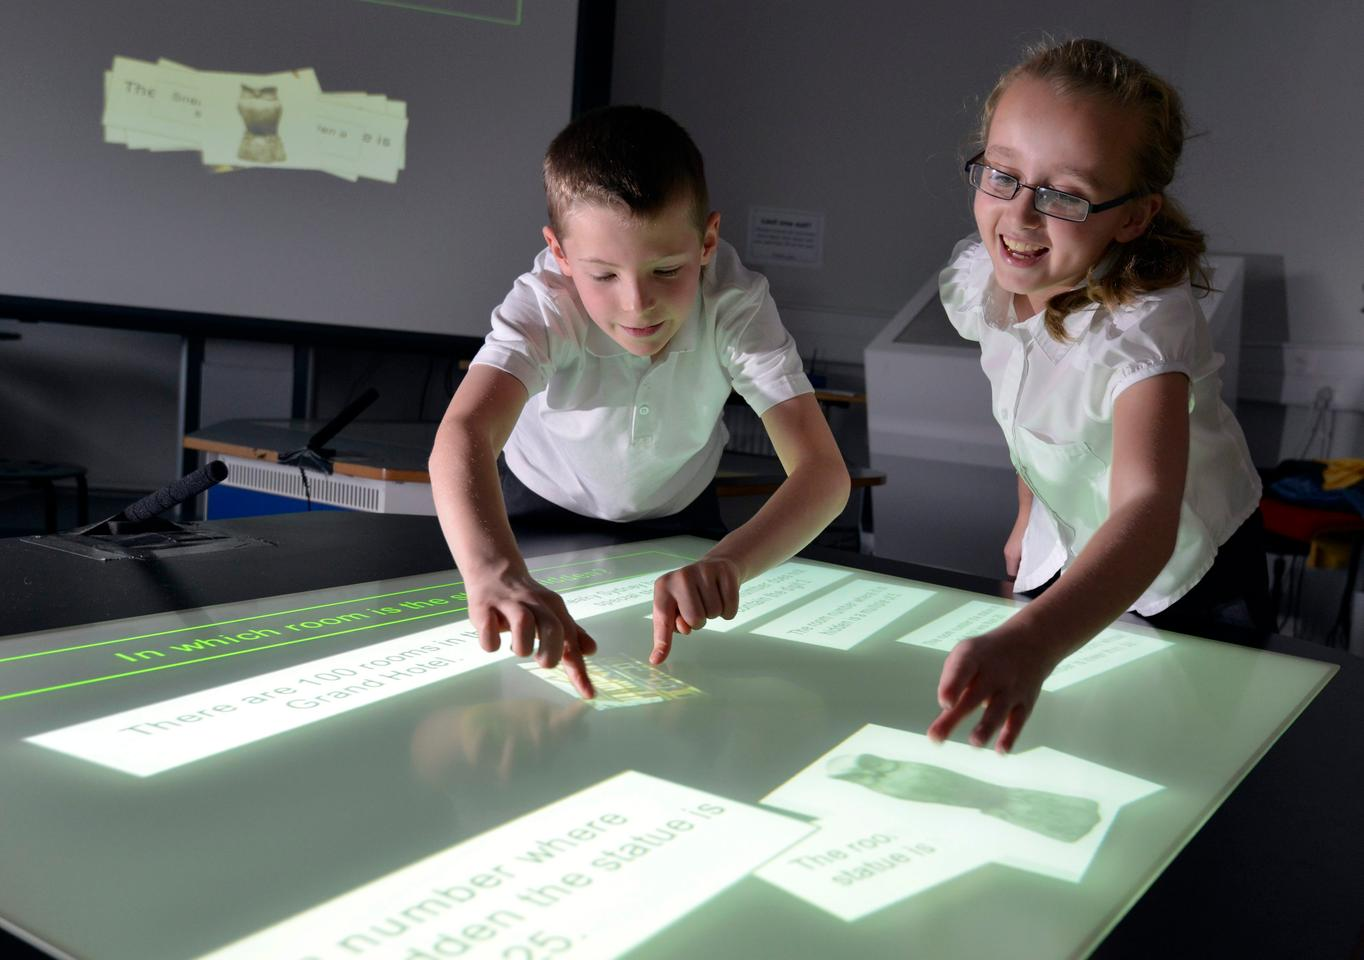 It was found that 45 percent of the students using the desks increased the number of unique mathematical expressions they created since the beginning of the project, while only 16 percent of students working on traditional paper saw the same sort of increase